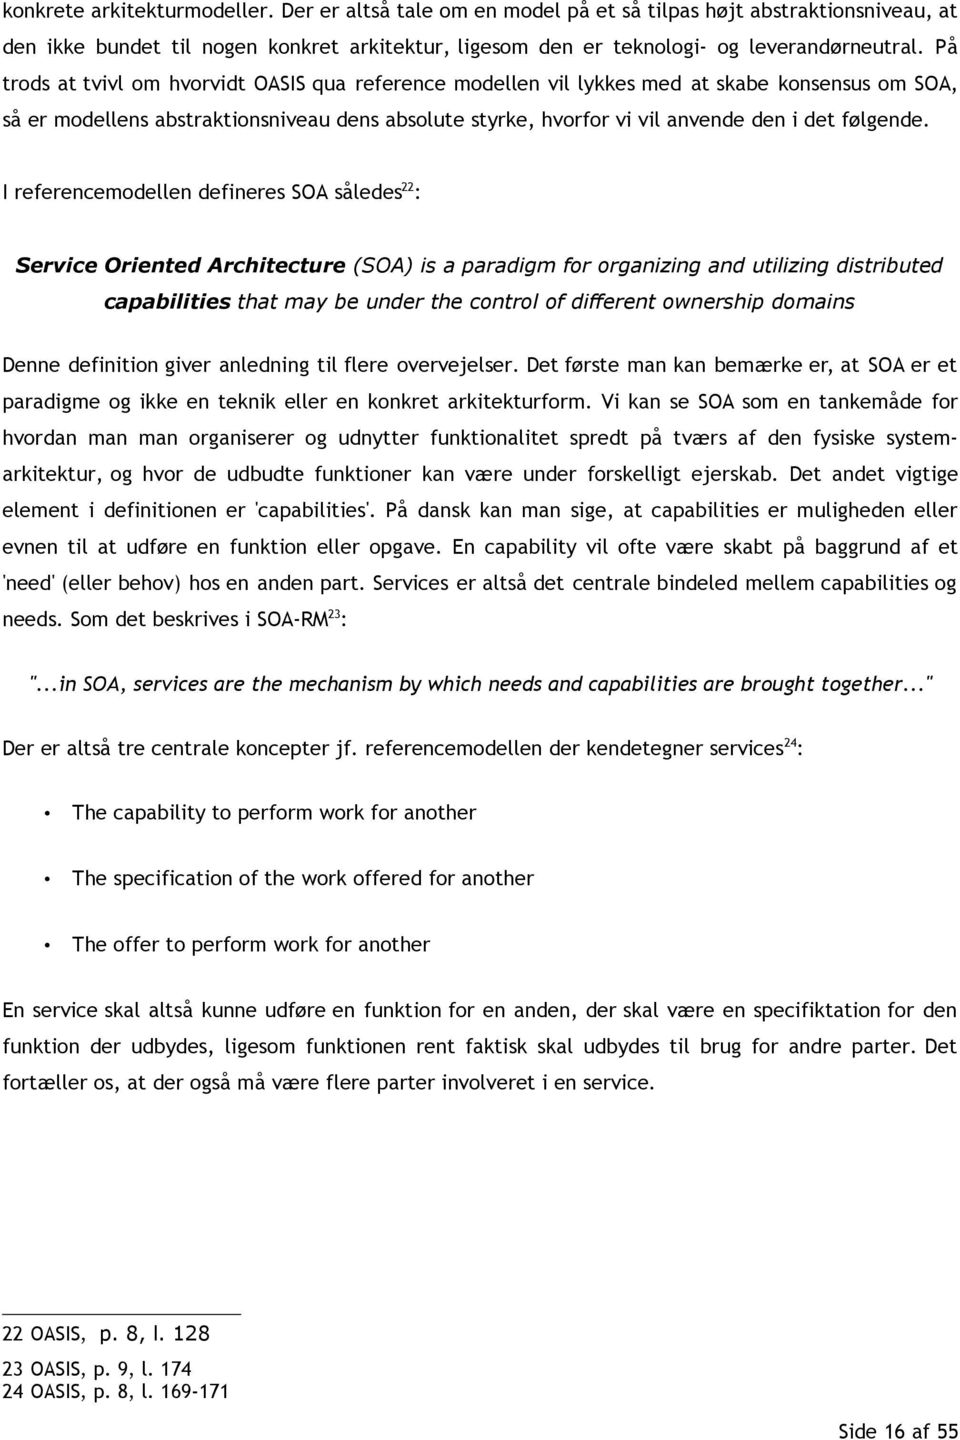 I referencemodellen defineres SOA således 22 : Service Oriented Architecture (SOA) is a paradigm for organizing and utilizing distributed capabilities that may be under the control of different